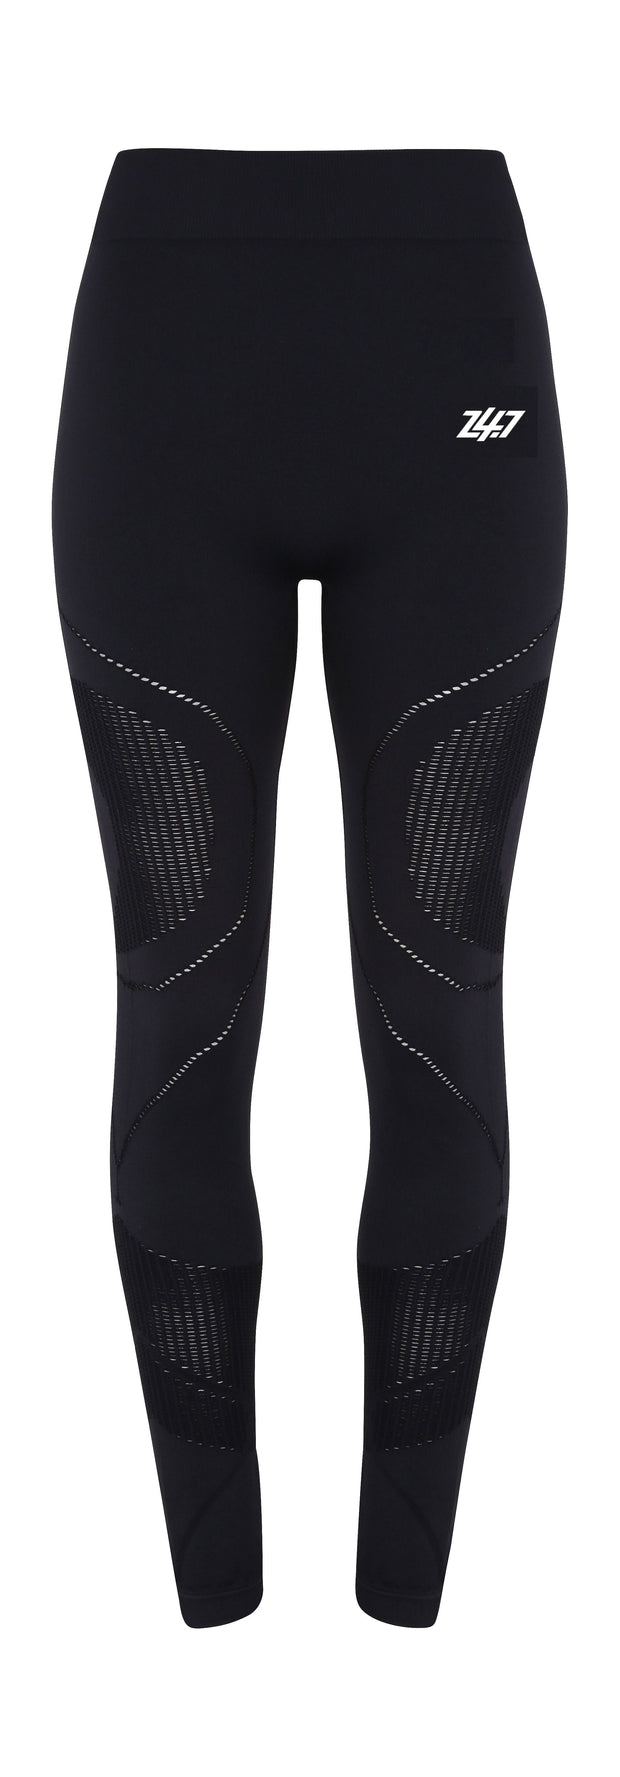 Harlow Seamless Laser Cut Leggings